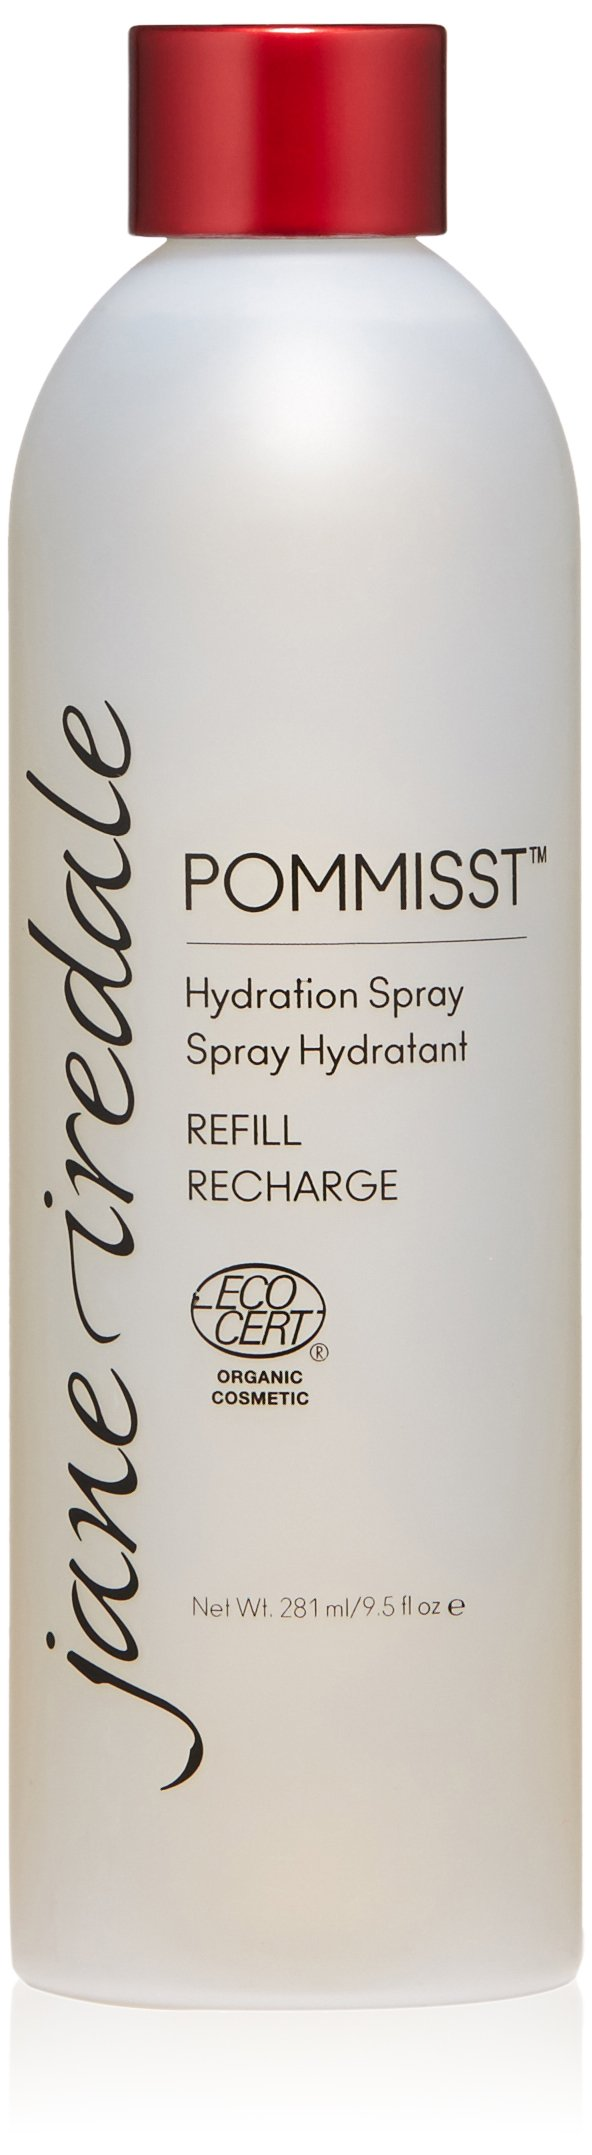 jane iredale Pommisst Hydration Spray Refill, 9.50 oz.